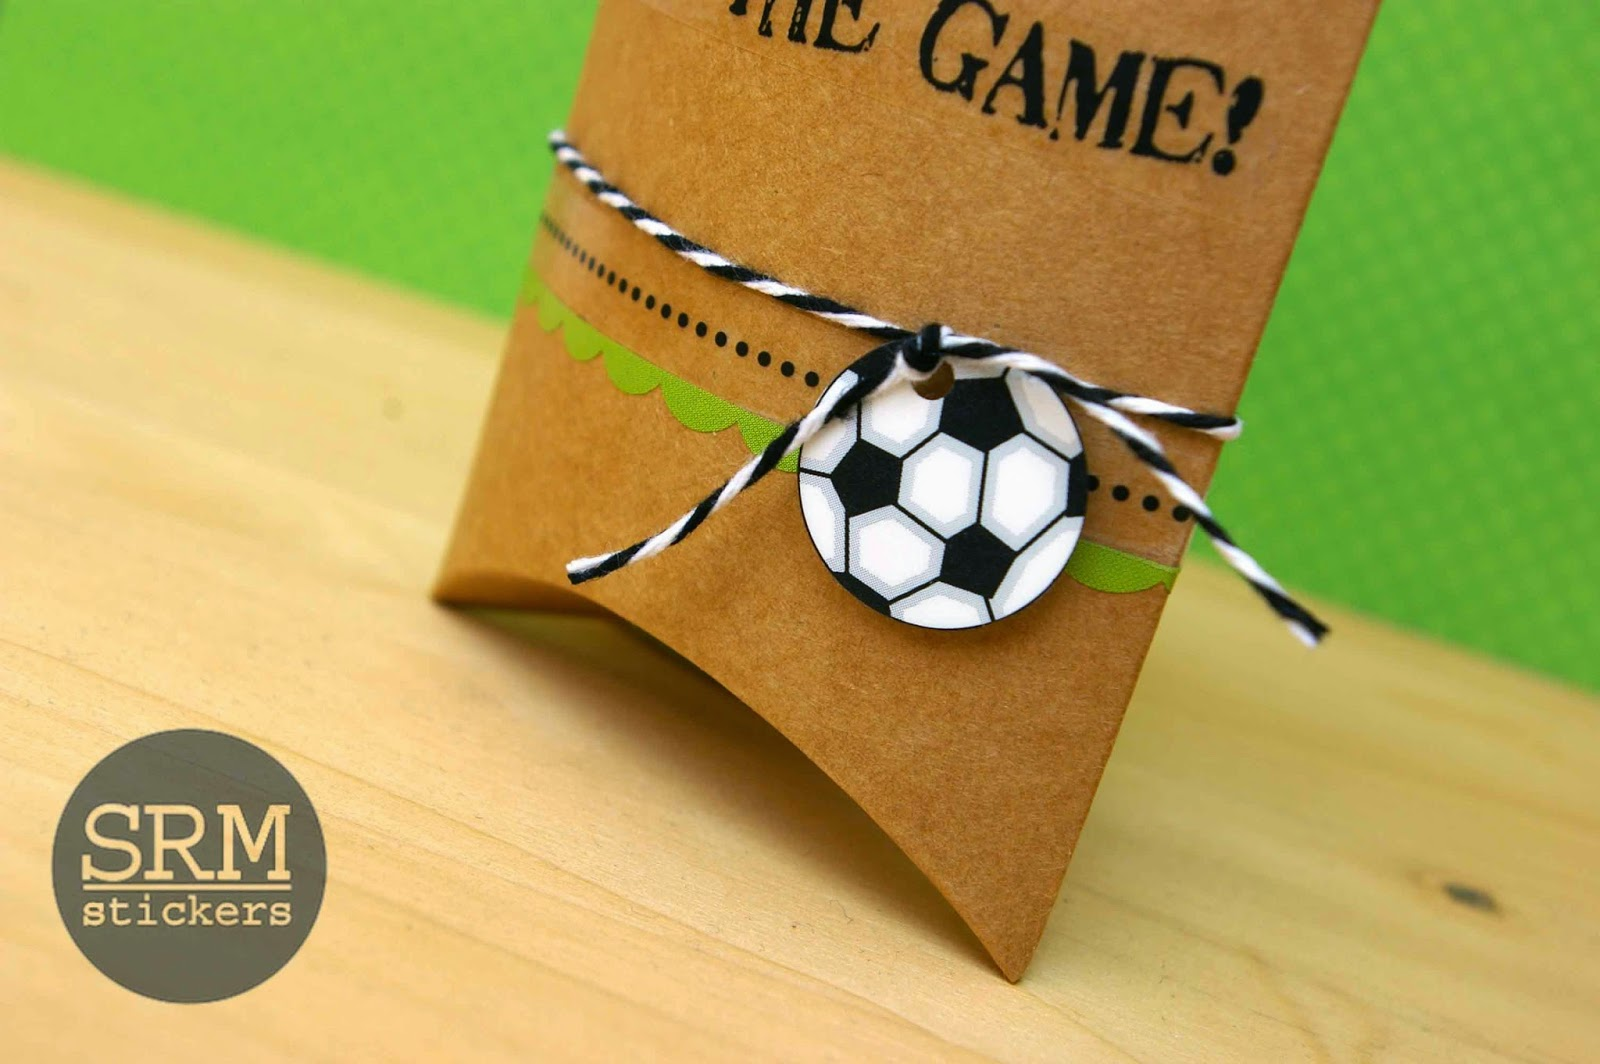 SRM Stickers - Soccer Team Treats by Lorena - #soccer #pillowbox #kraft #srmstickers #sticker #twine